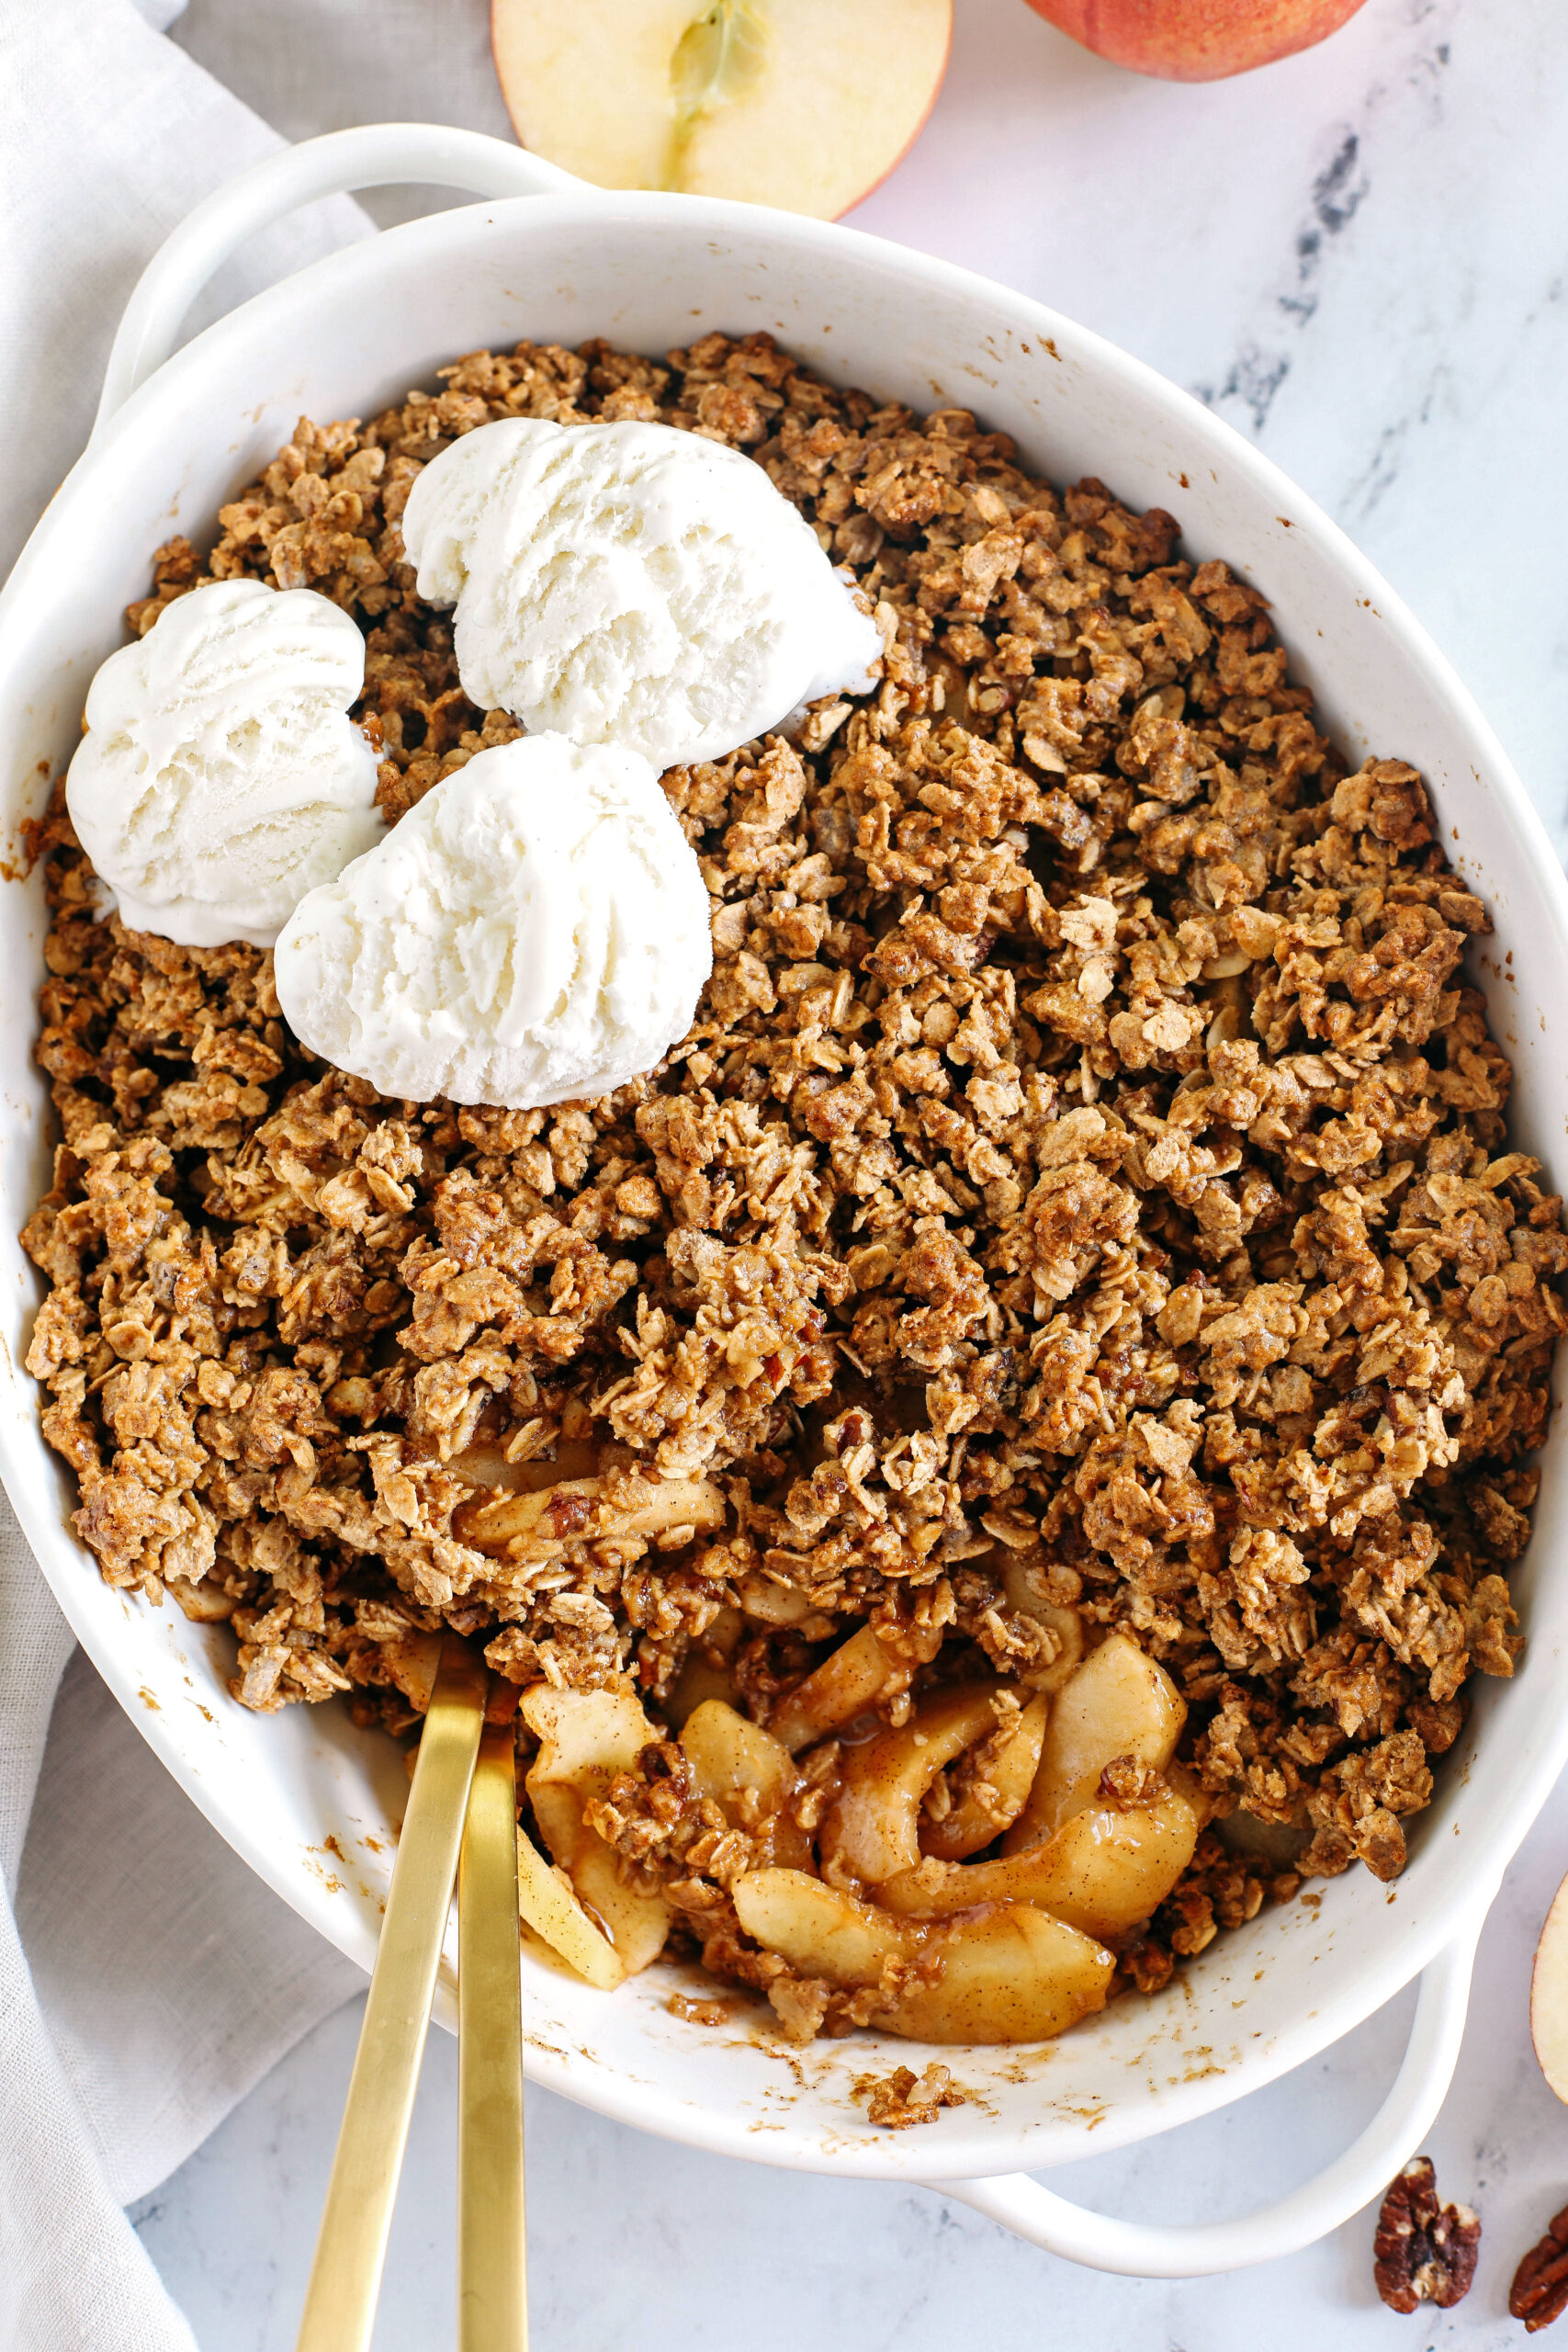 This Healthy Apple Crisp is loaded with tender apples and warm spices, naturally sweetened with maple syrup, all topped with a crunchy oatmeal pecan topping!